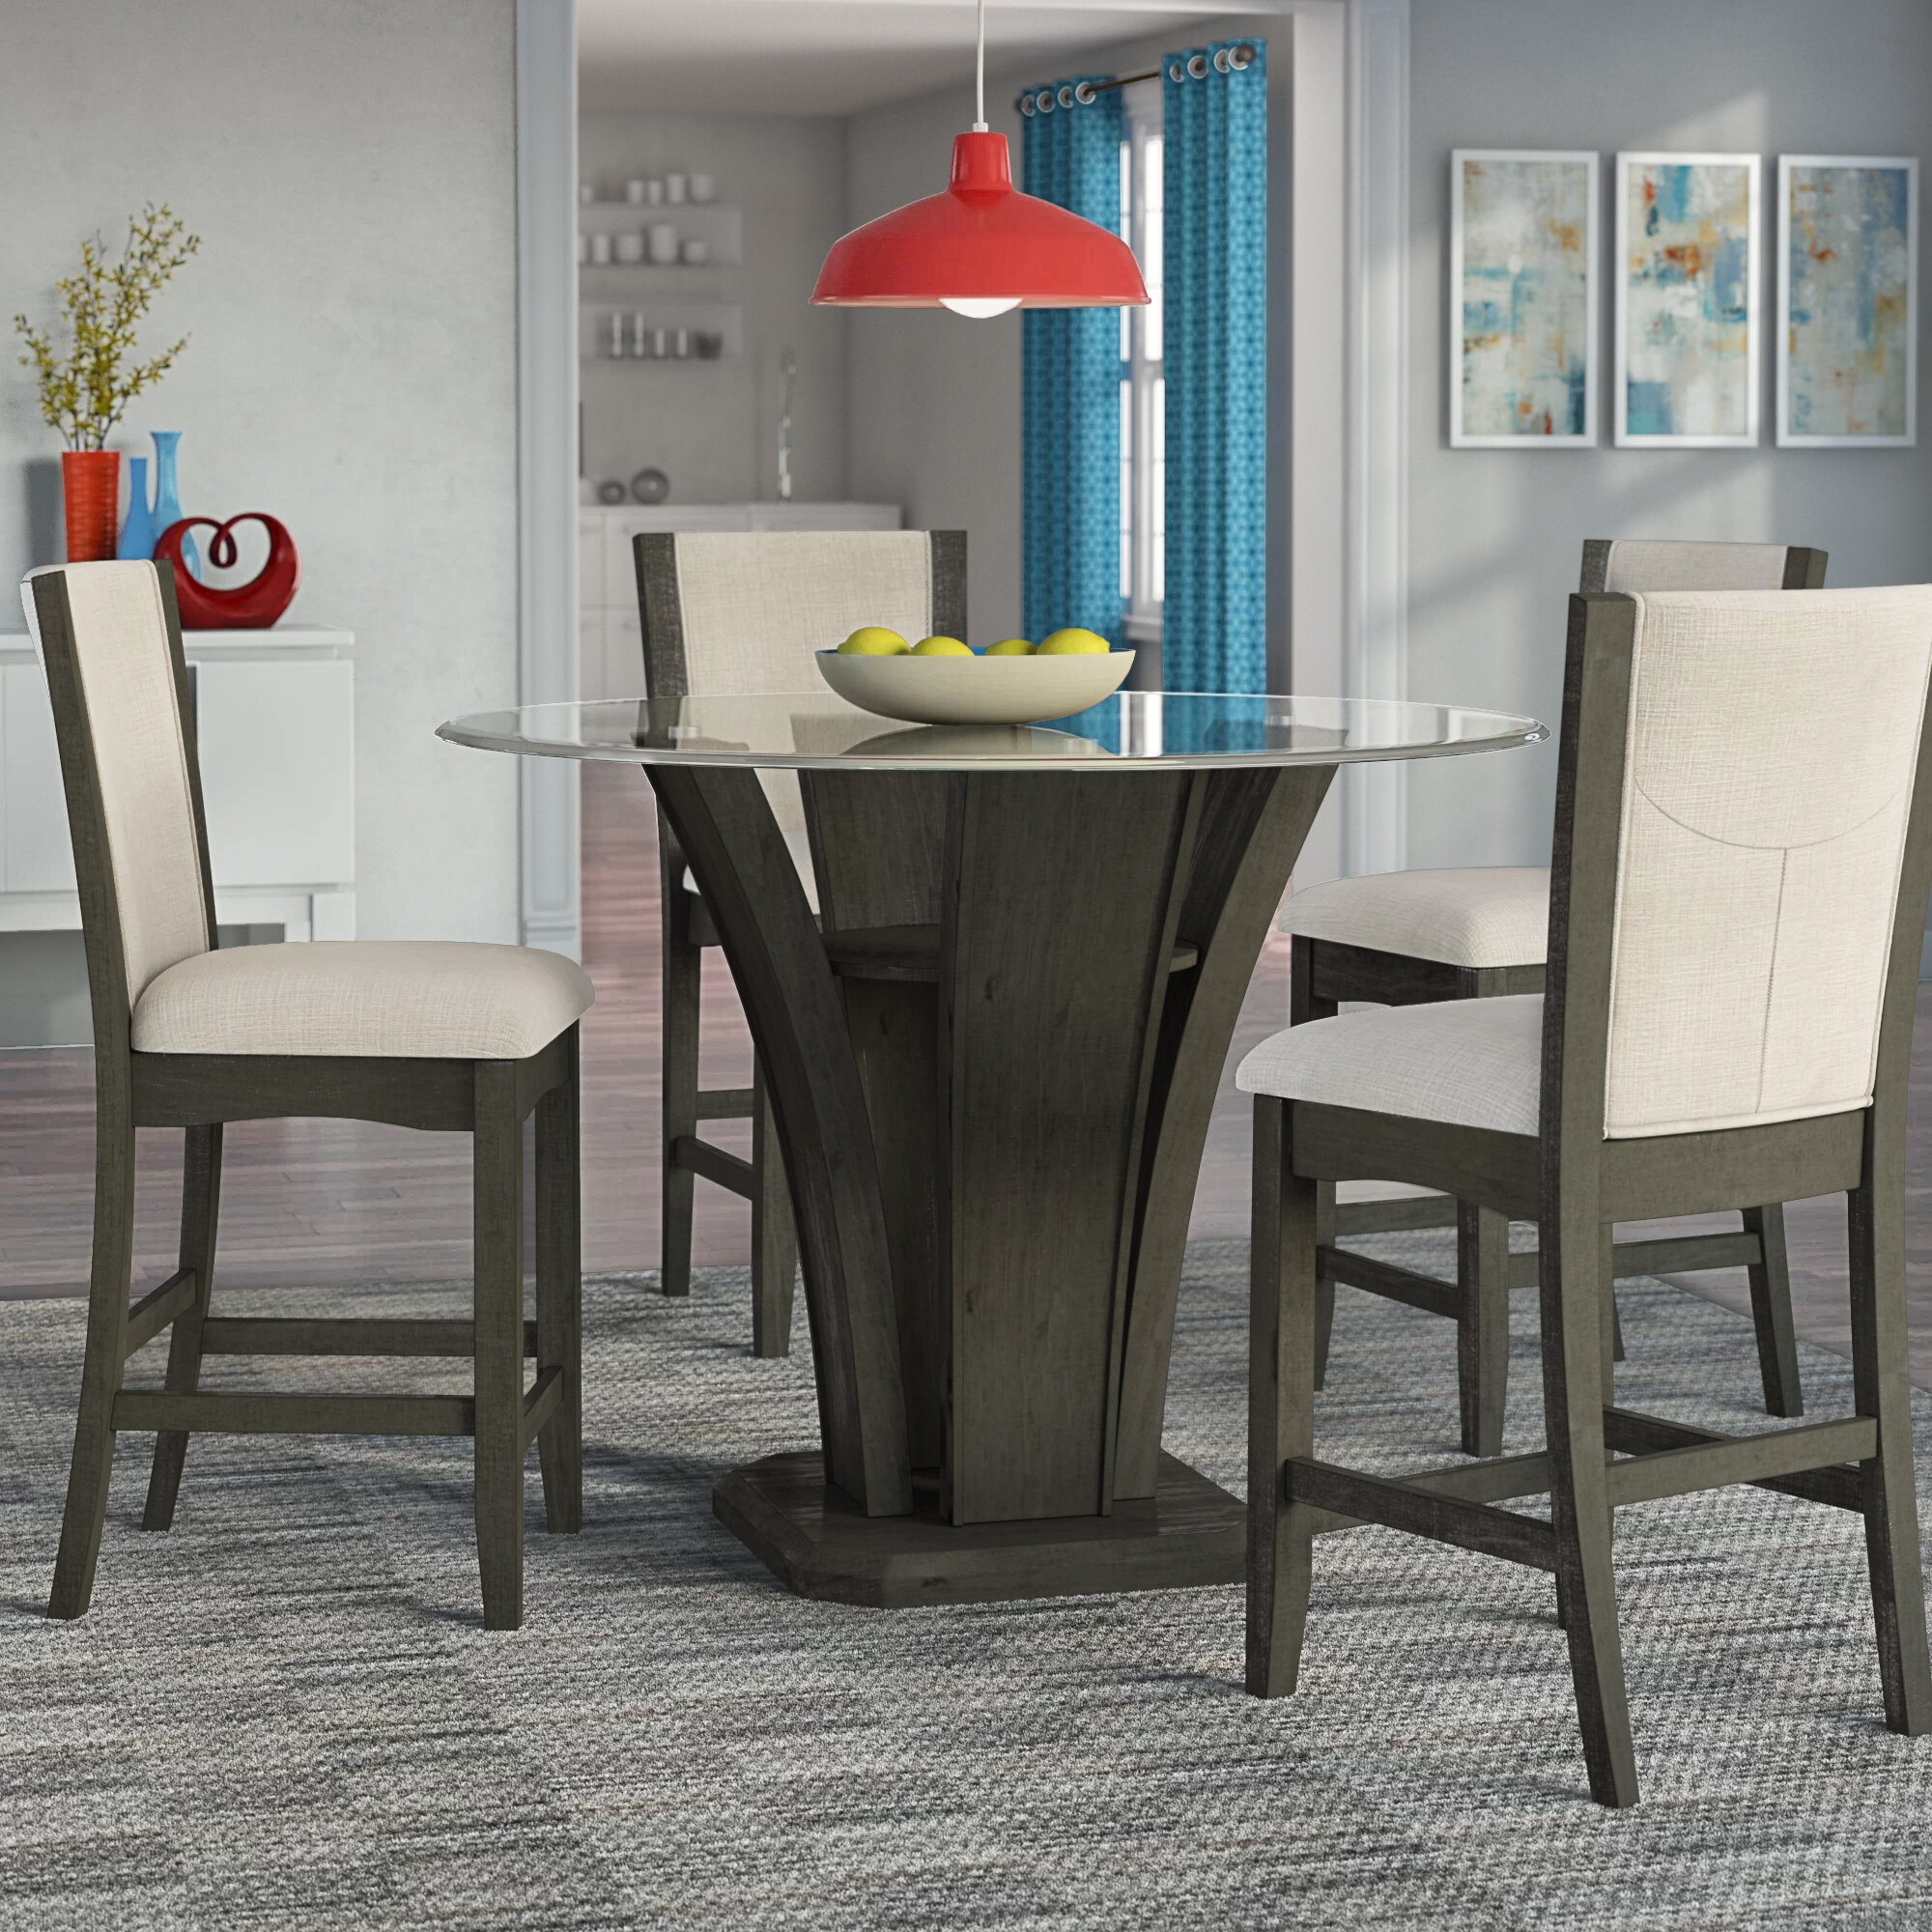 Fantastic Marnie 5 Piece Round Counter Height Dining Set Gmtry Best Dining Table And Chair Ideas Images Gmtryco